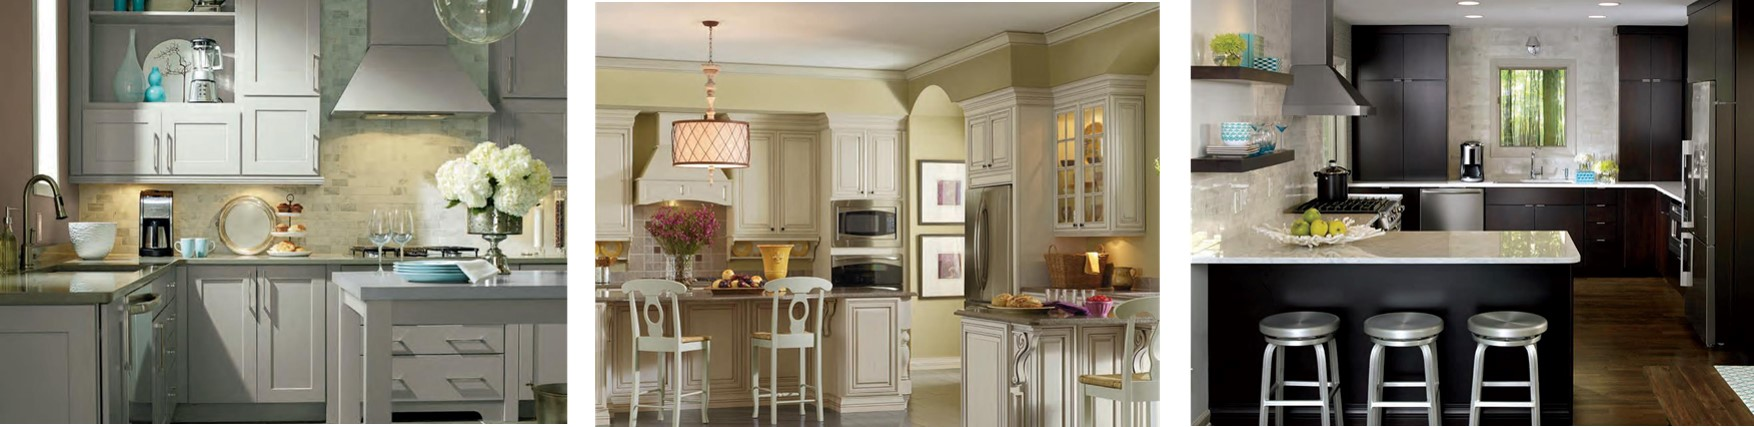 Kitchen cabinets top kitchen remodeling company elite for Capital one kitchen cabinets